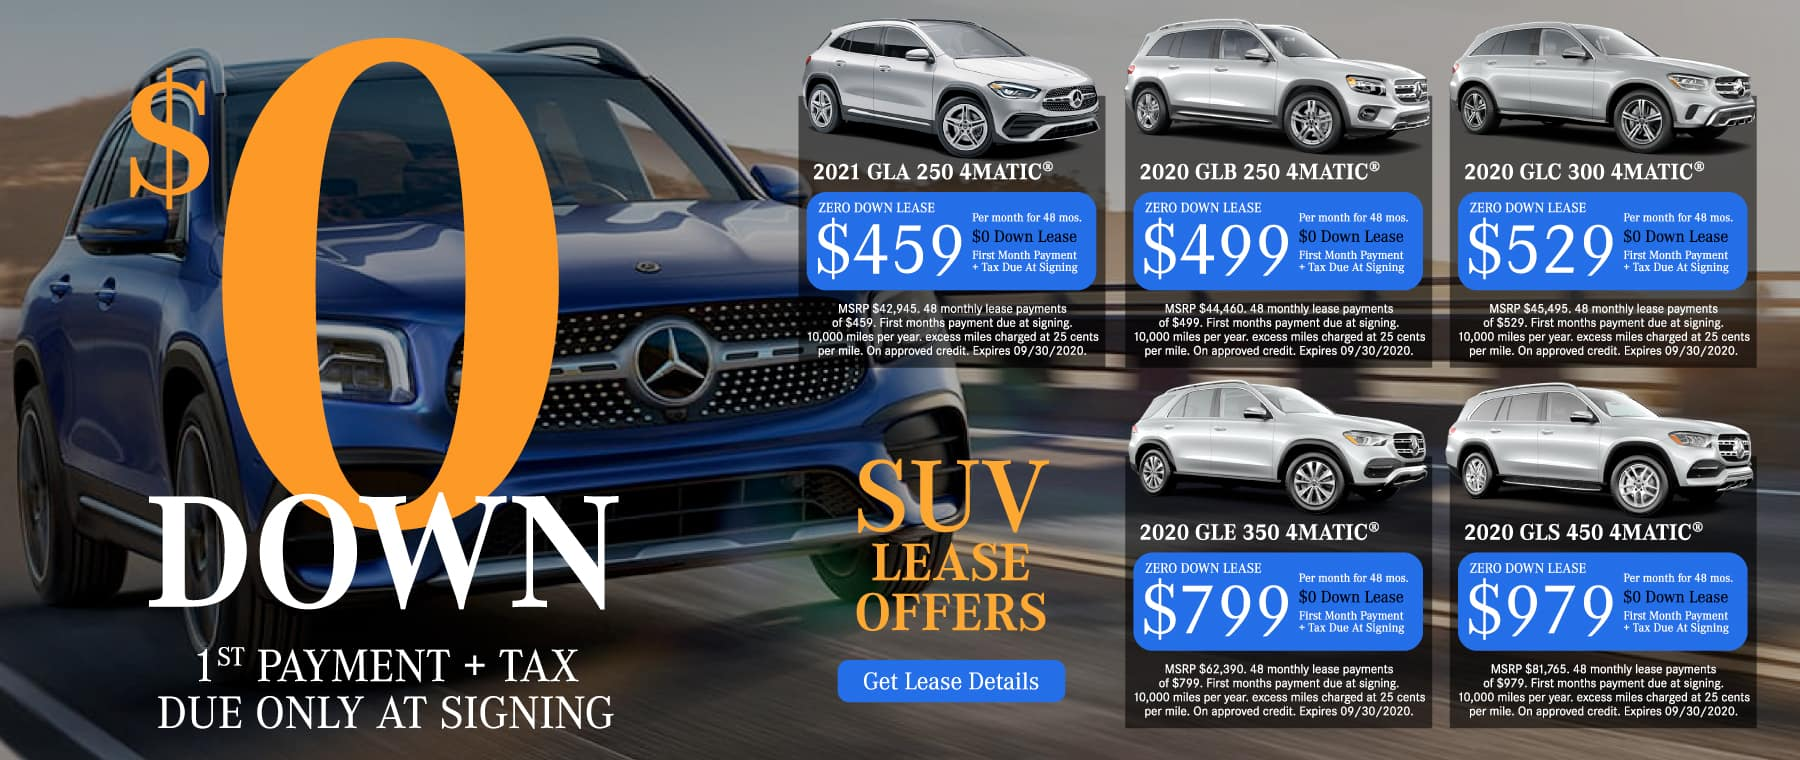 SUV Lease Offers